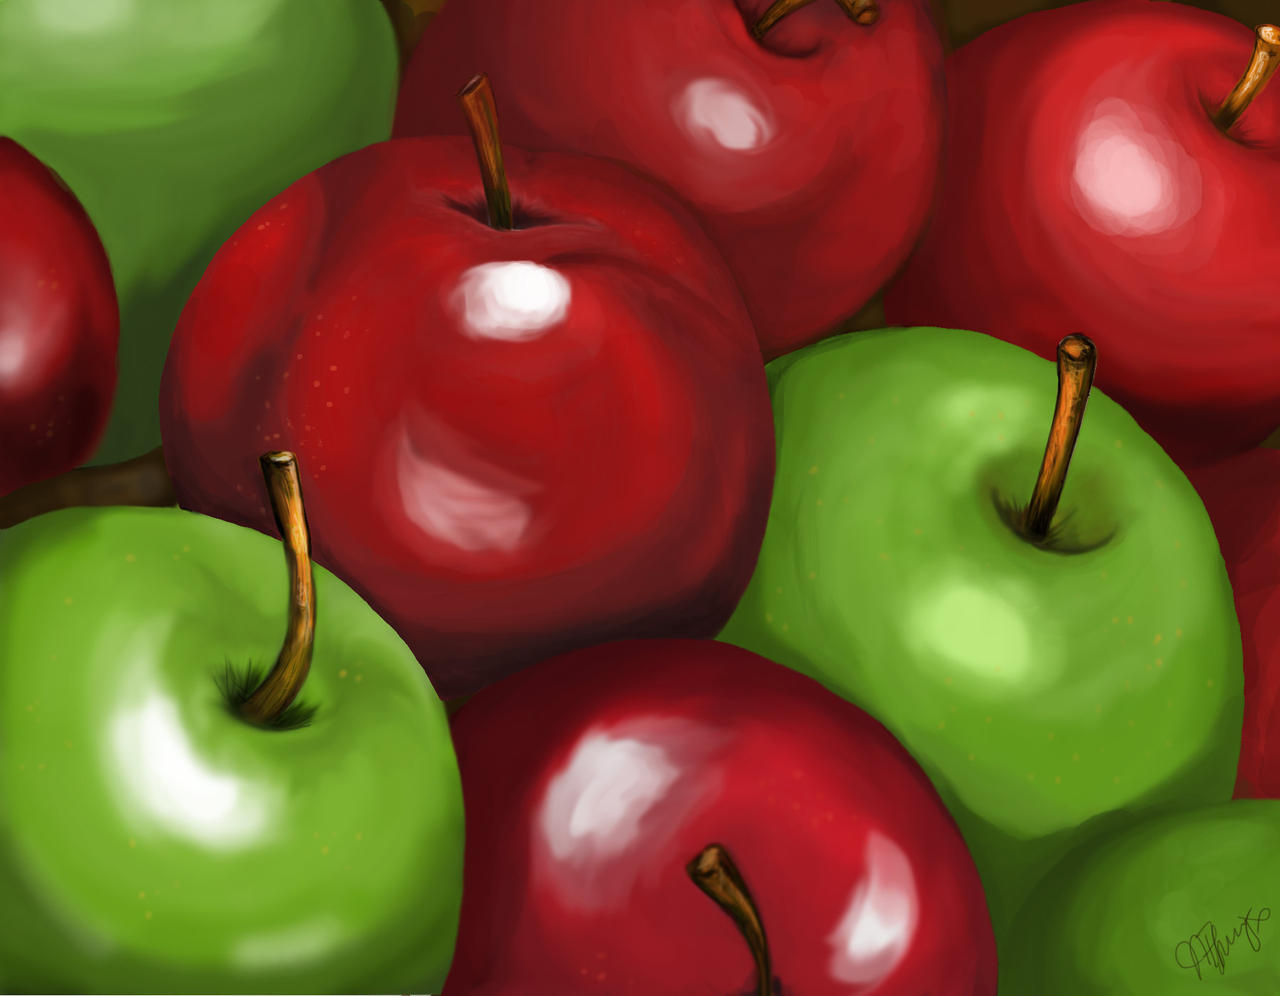 Green And Red Apples Images & Pictures - Becuo